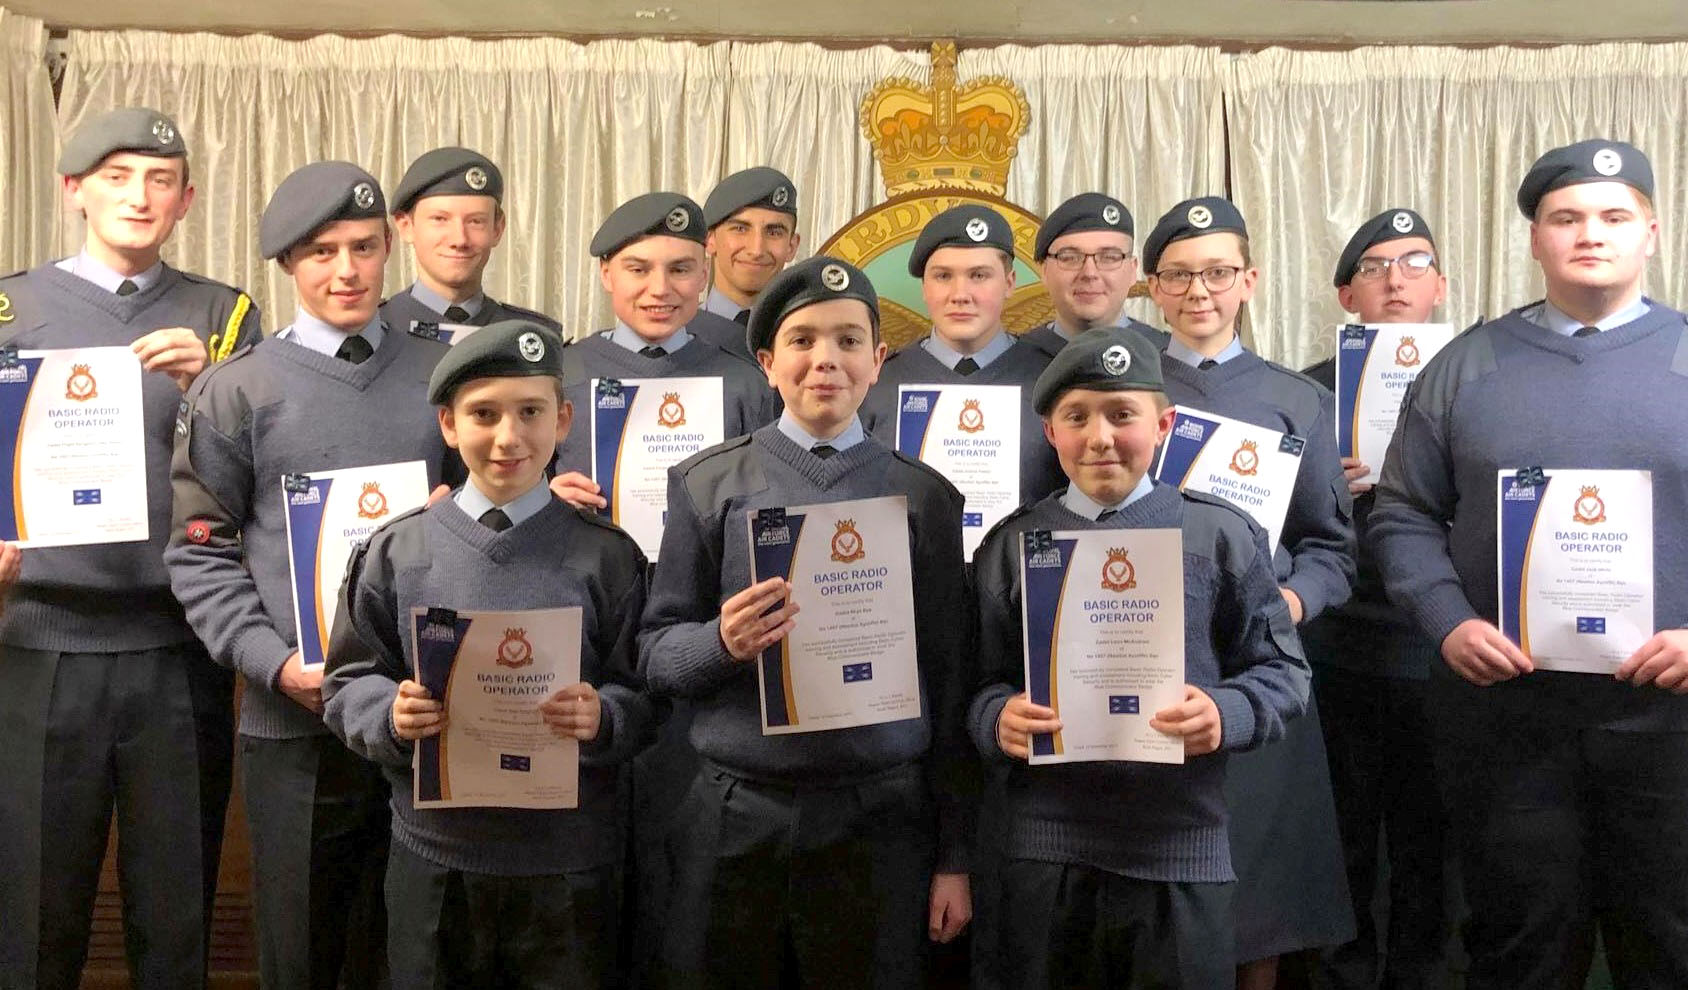 Presentation Night for Town's Air Cadets